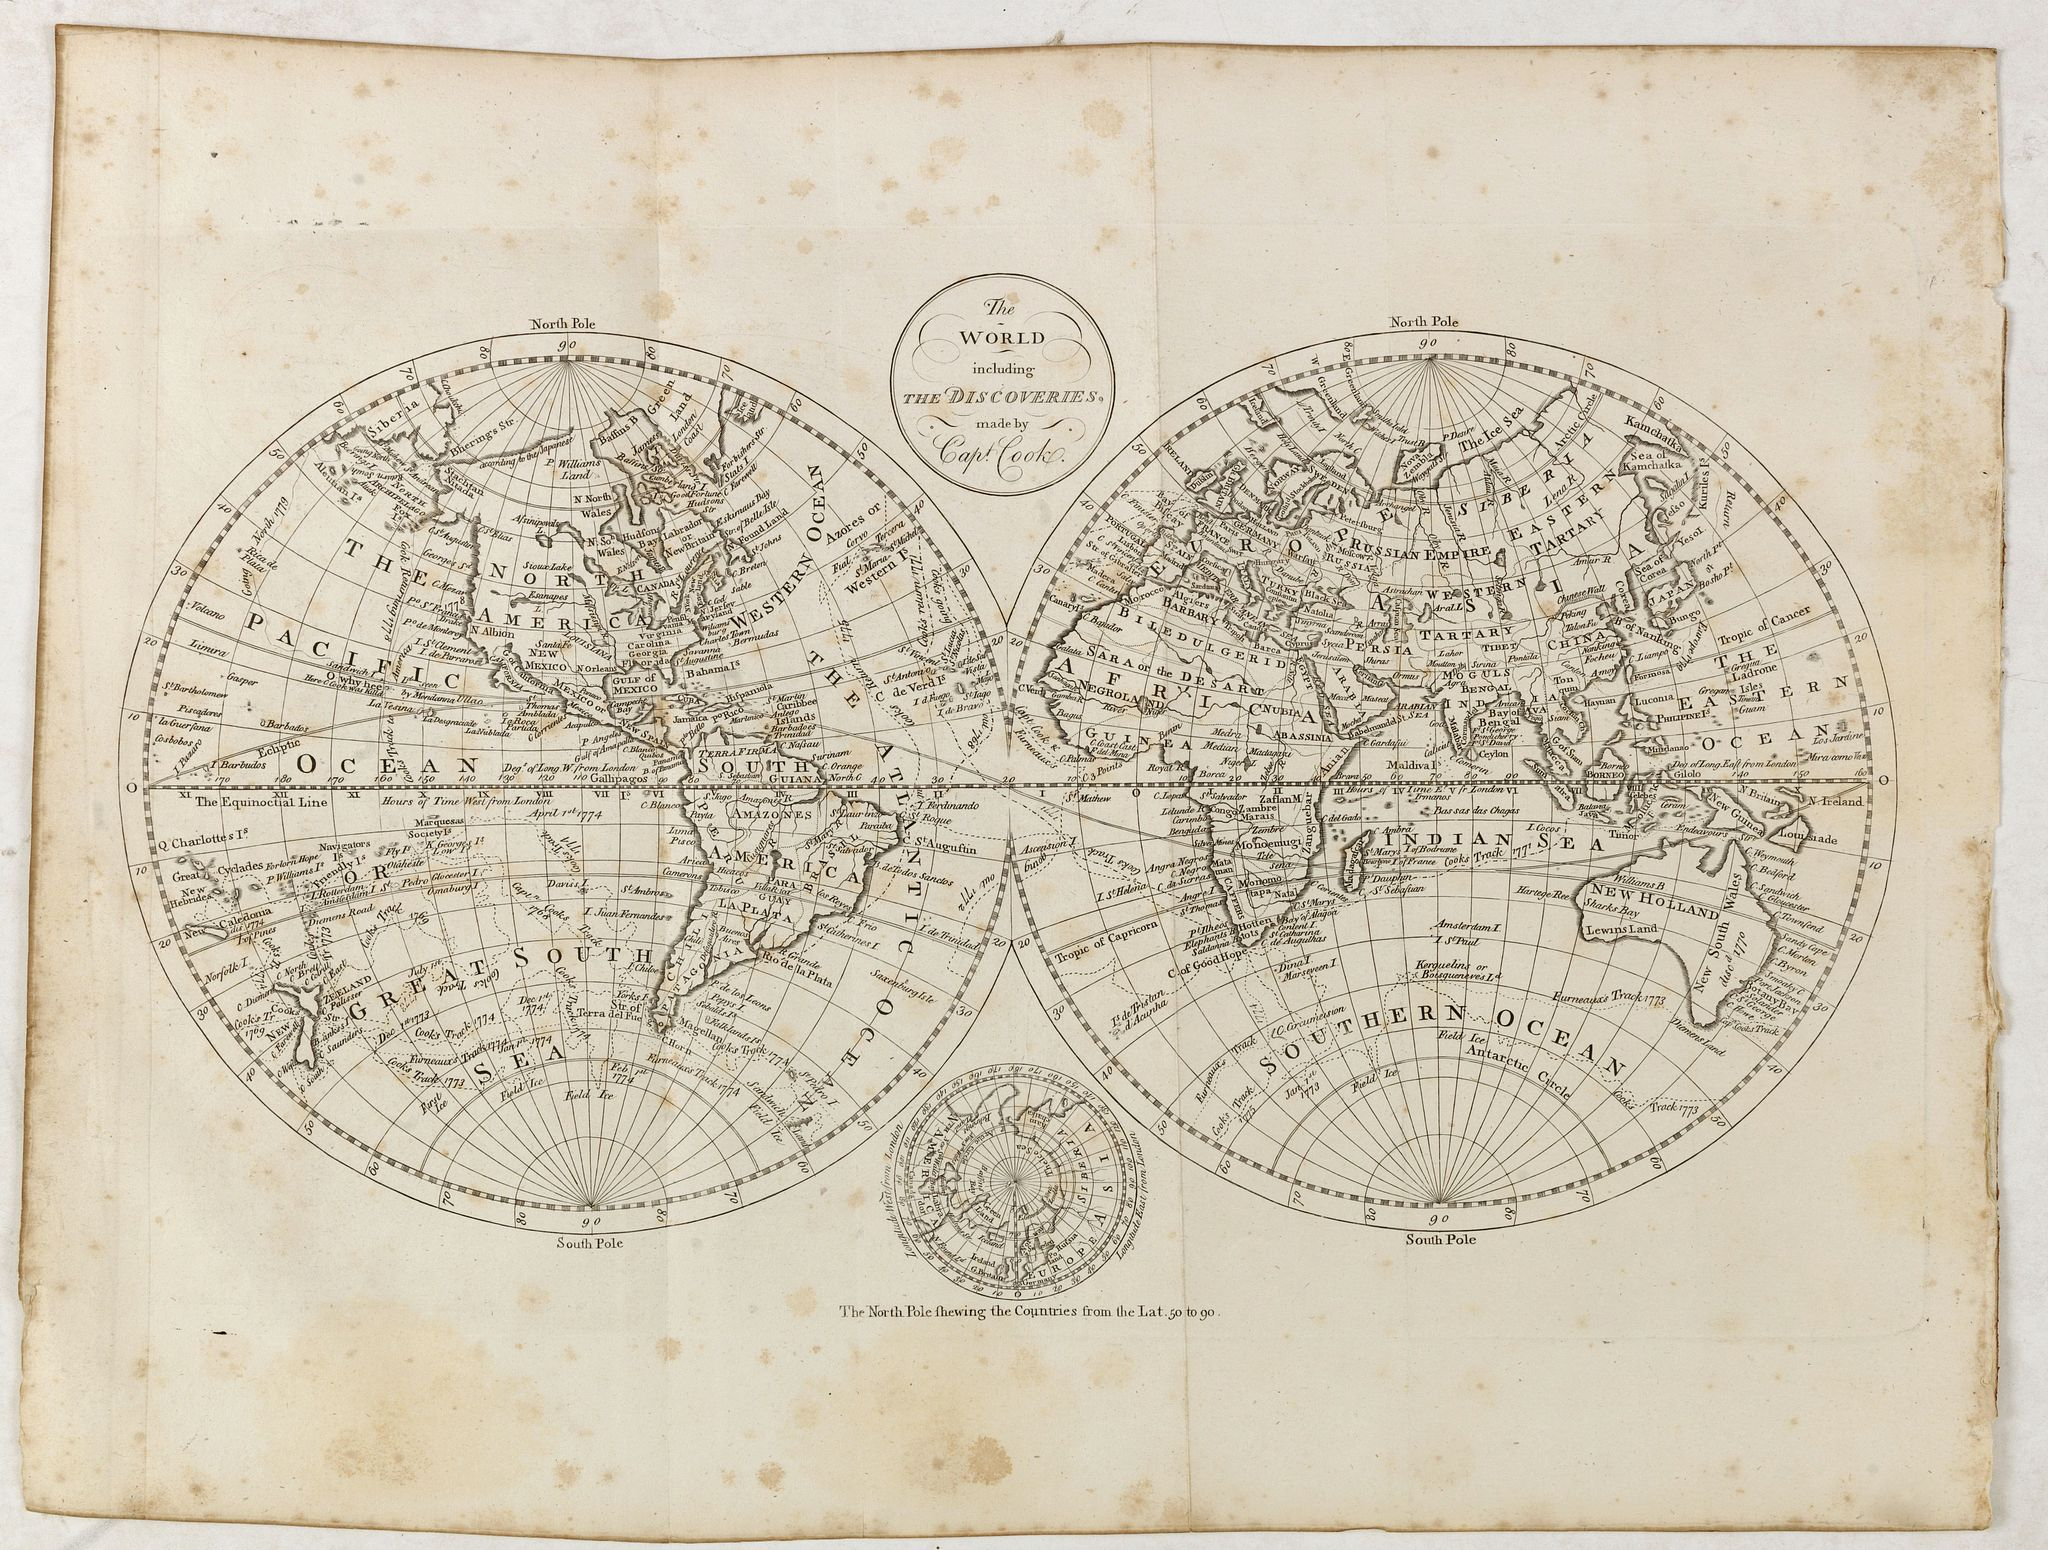 BOWEN, T. -  The world, including the discoveries made by Capt. Cook.